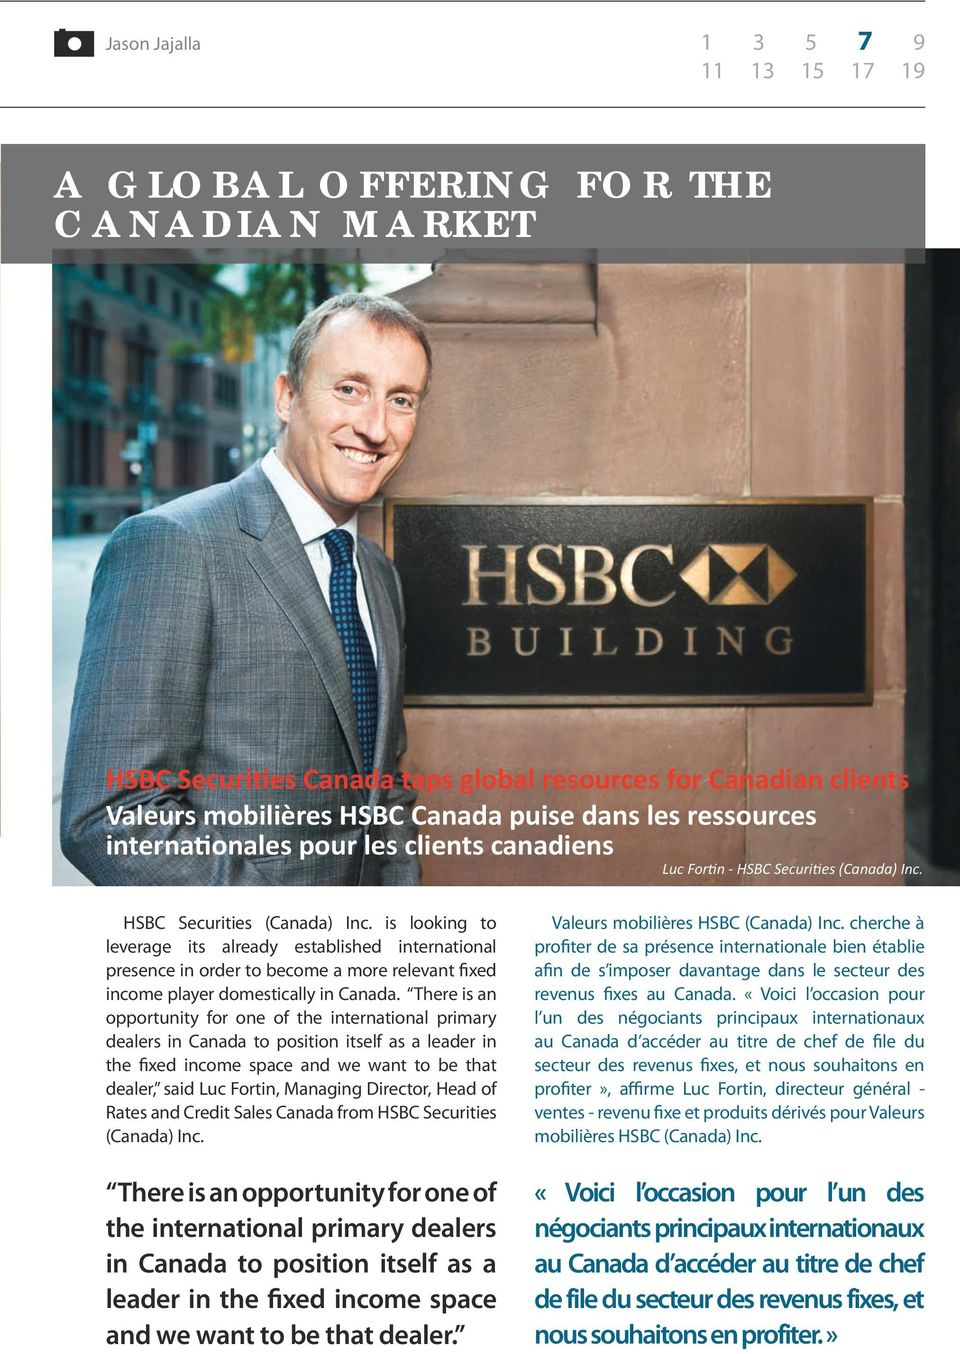 HSBC Securities (Canada) Inc. is looking to leverage its already established international presence in order to become a more relevant fixed income player domestically in Canada.